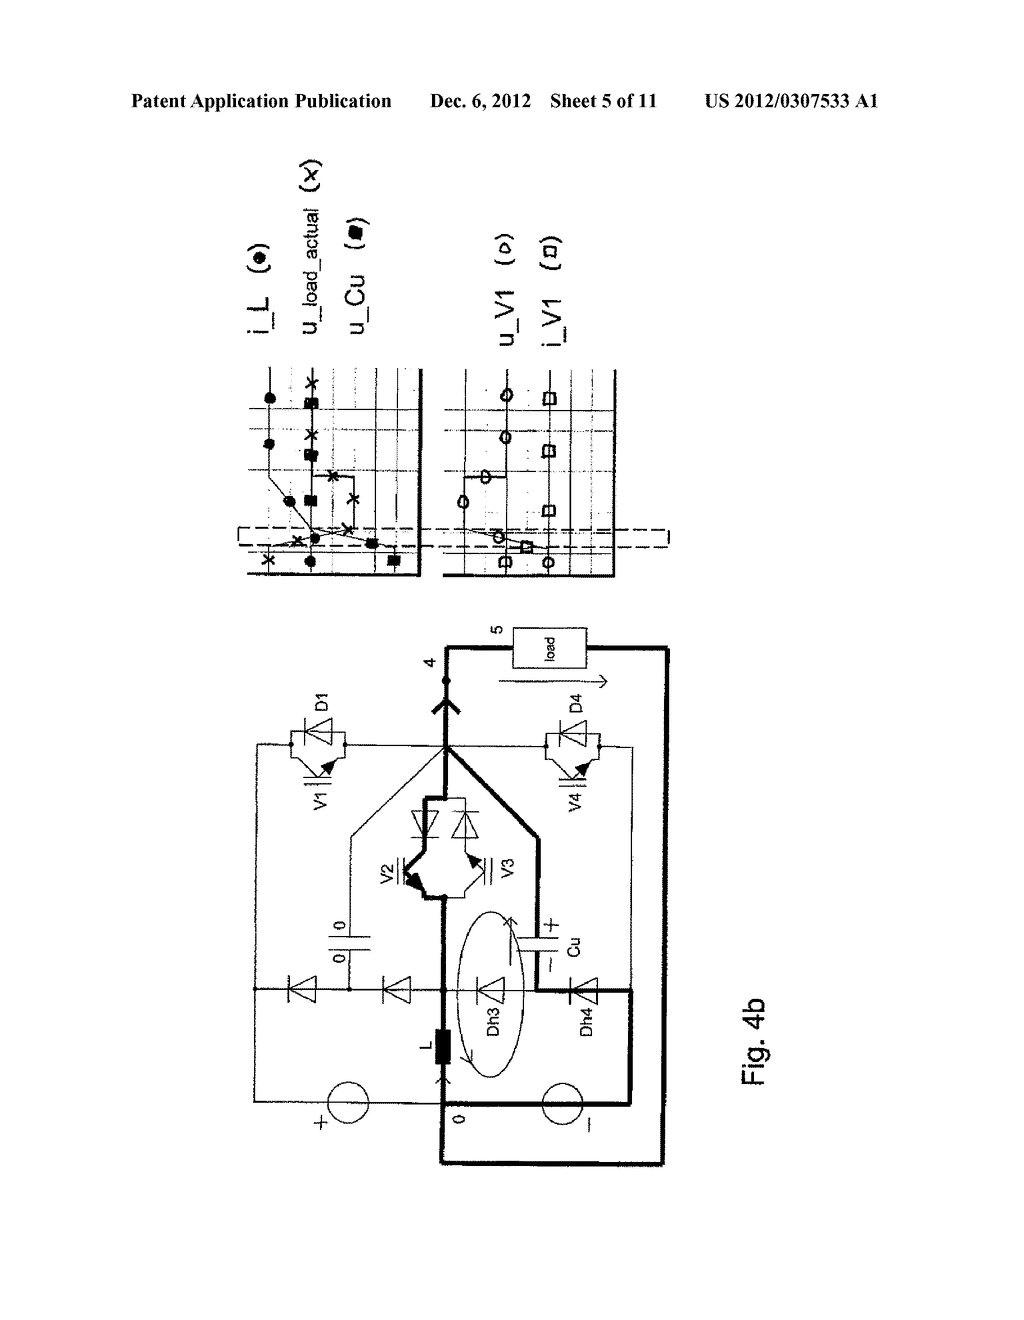 3 Level Pulse Width Modulation Inverter With Snubber Circuit Modulator Diagram Schematic And Image 06